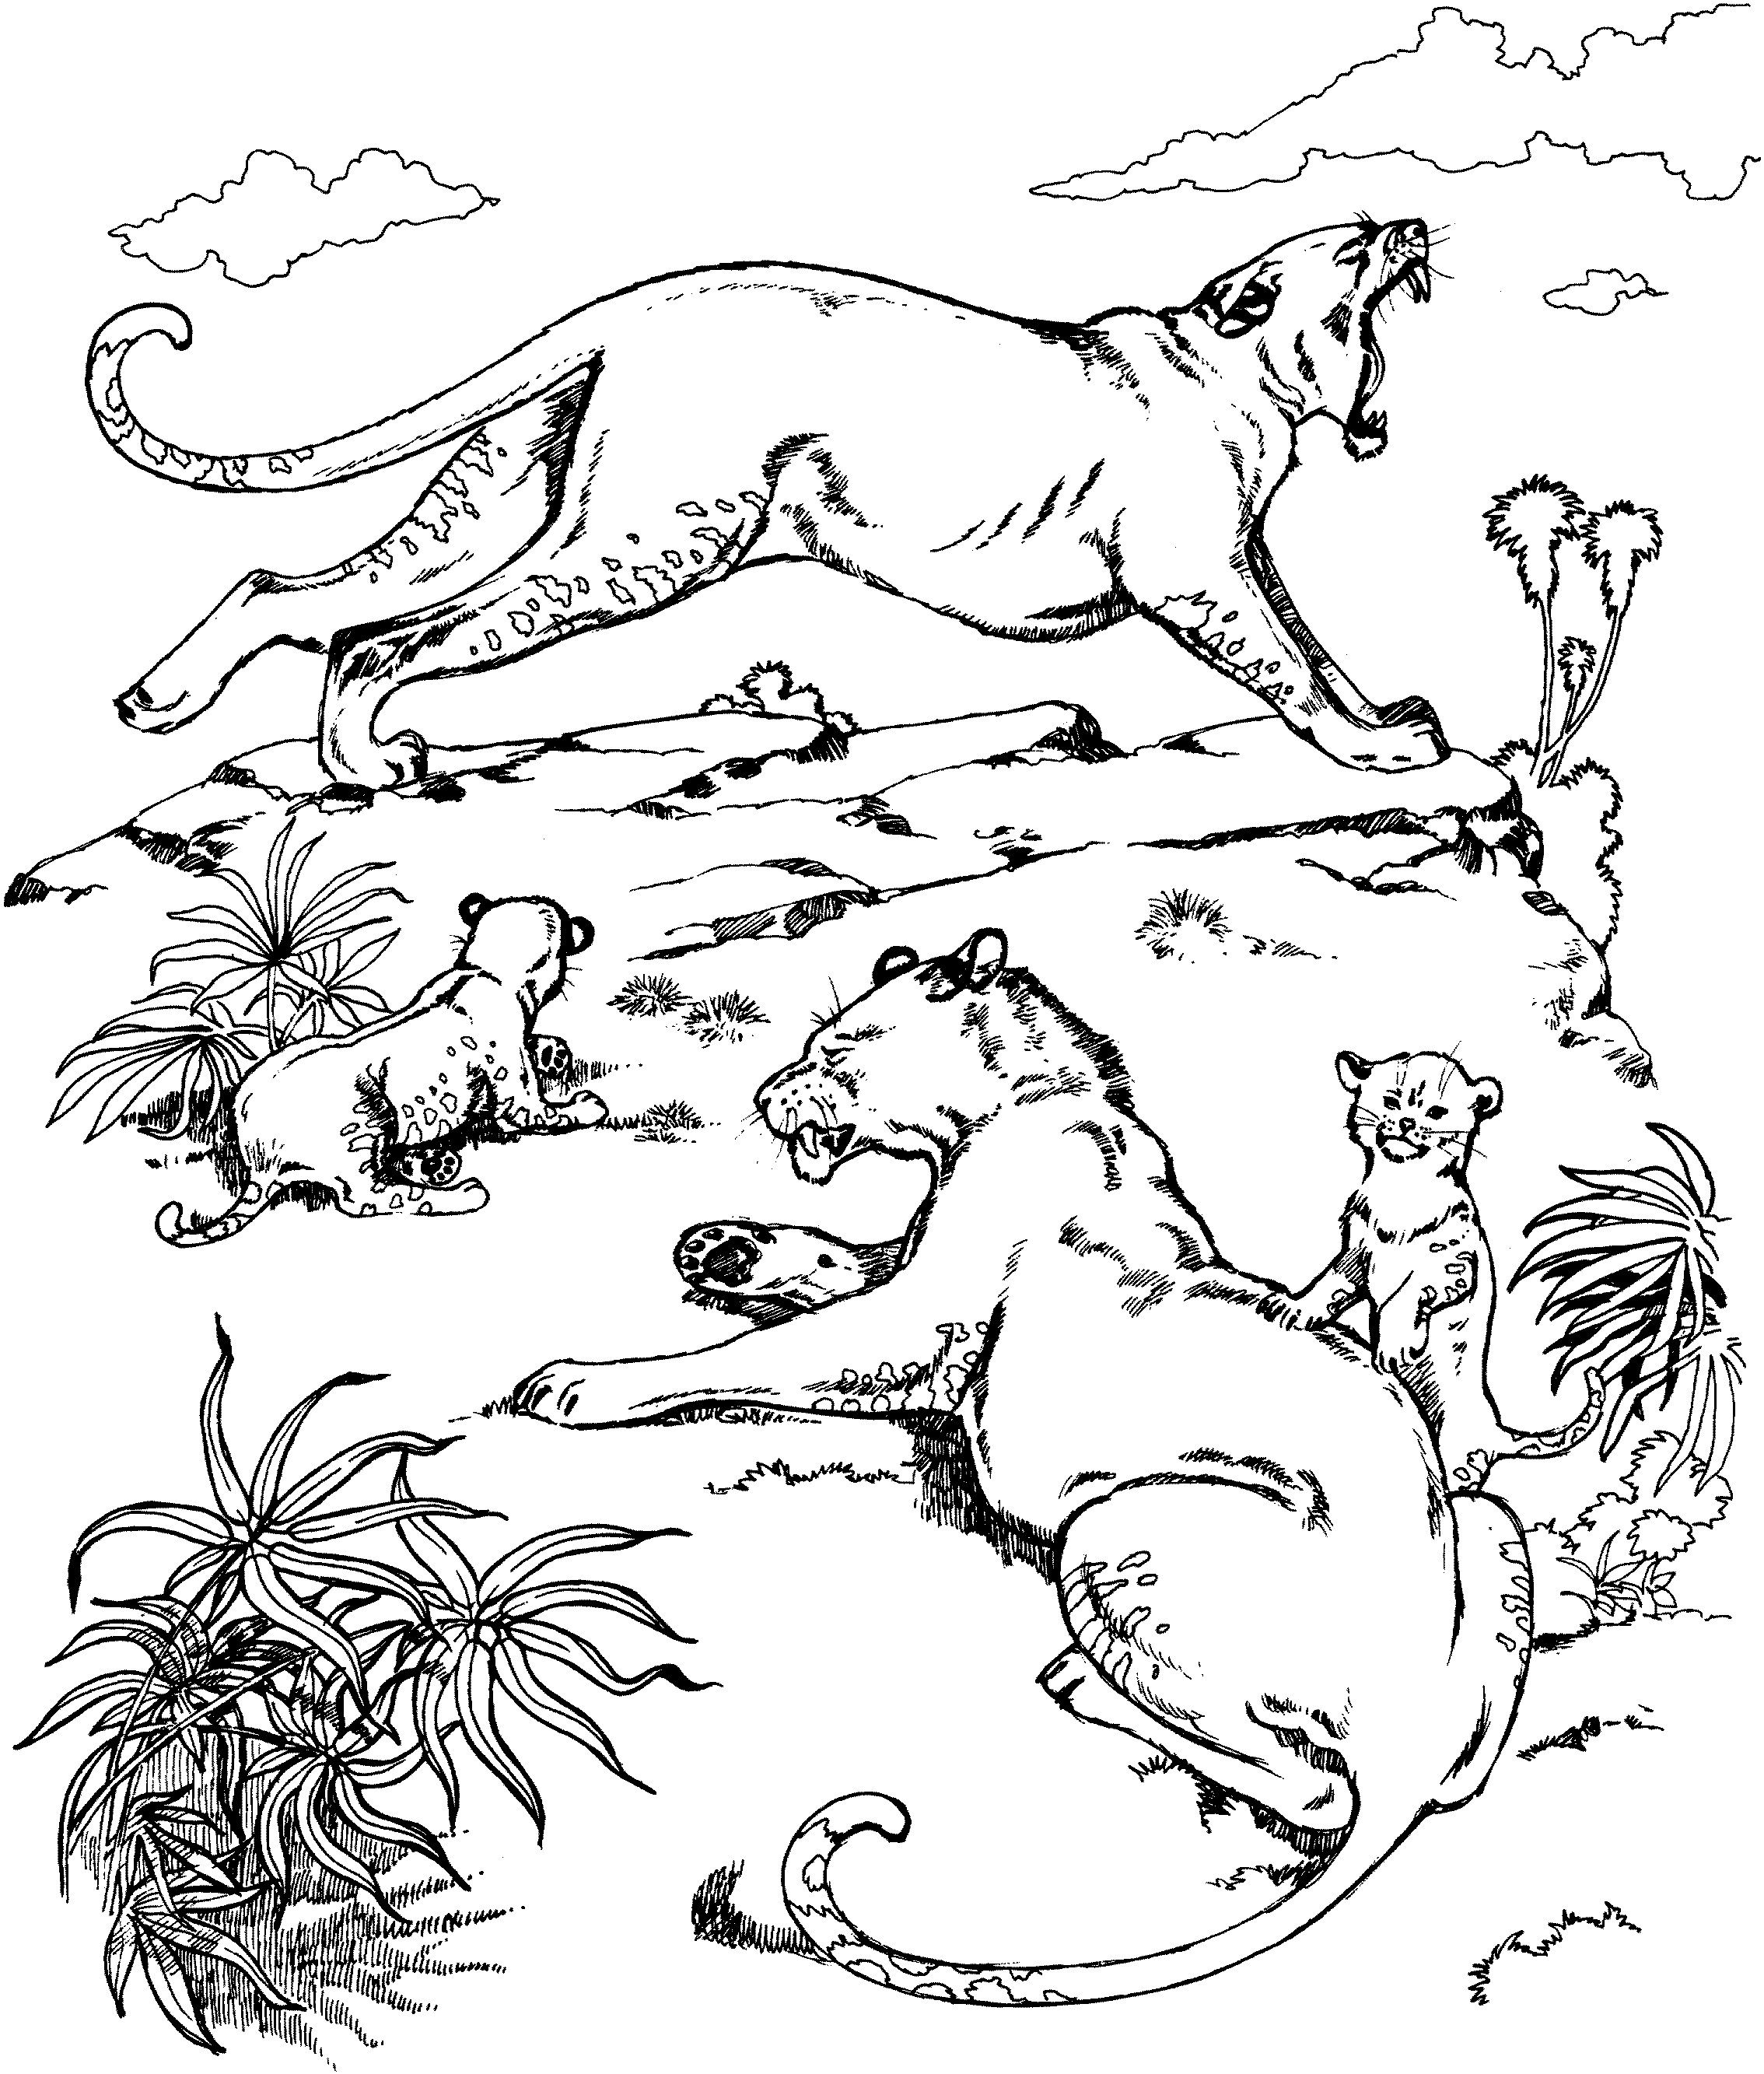 Puma Coloring Pages At Getcolorings